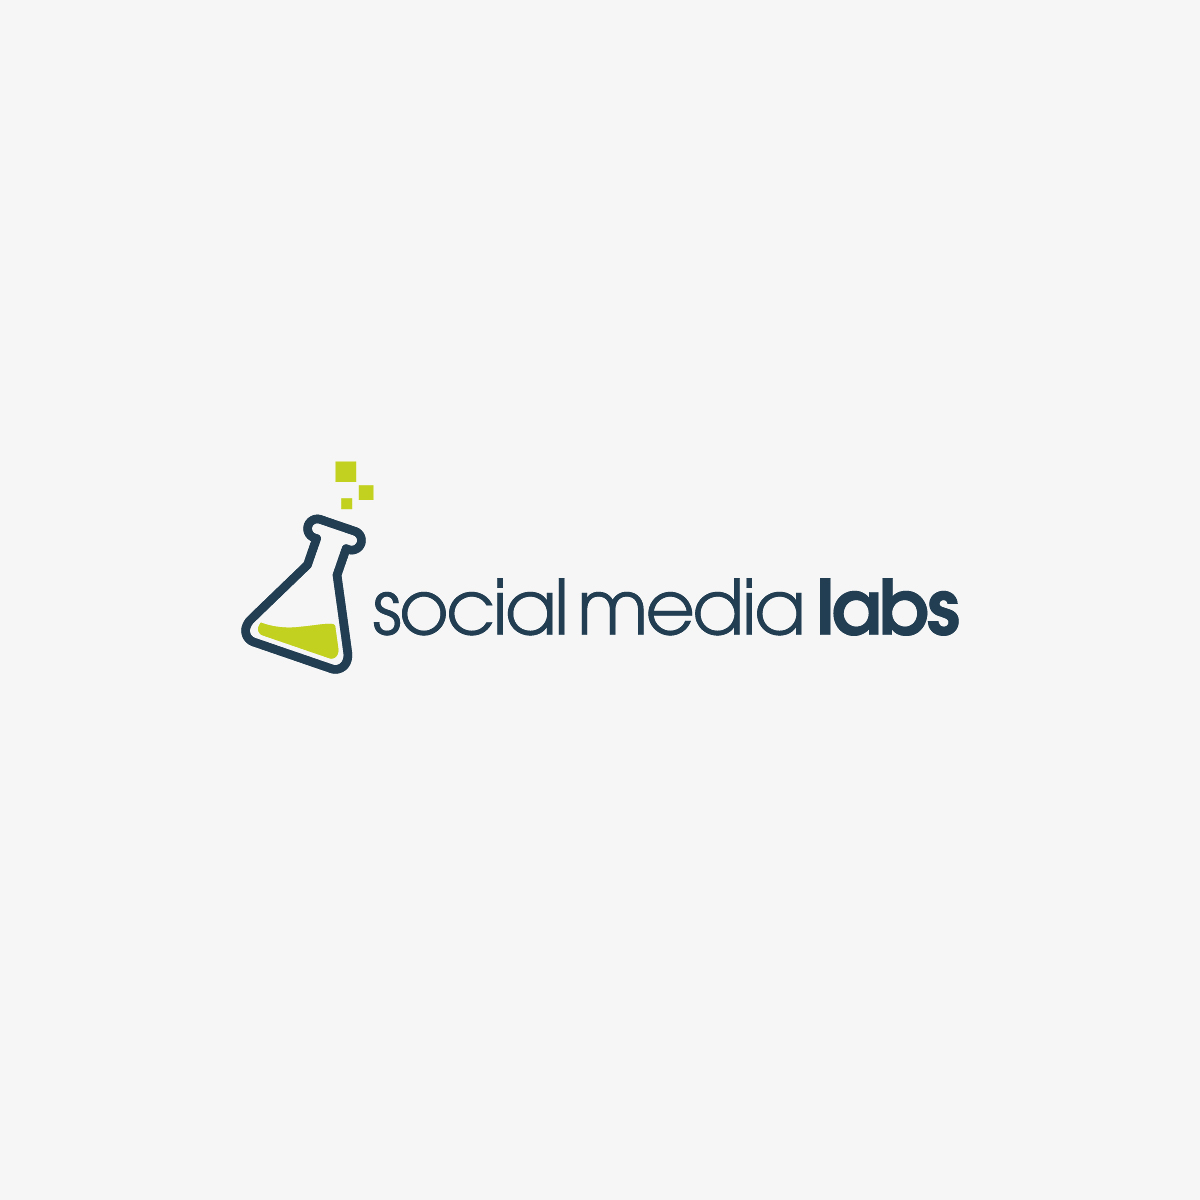 socialmedialabs_brand_by_think